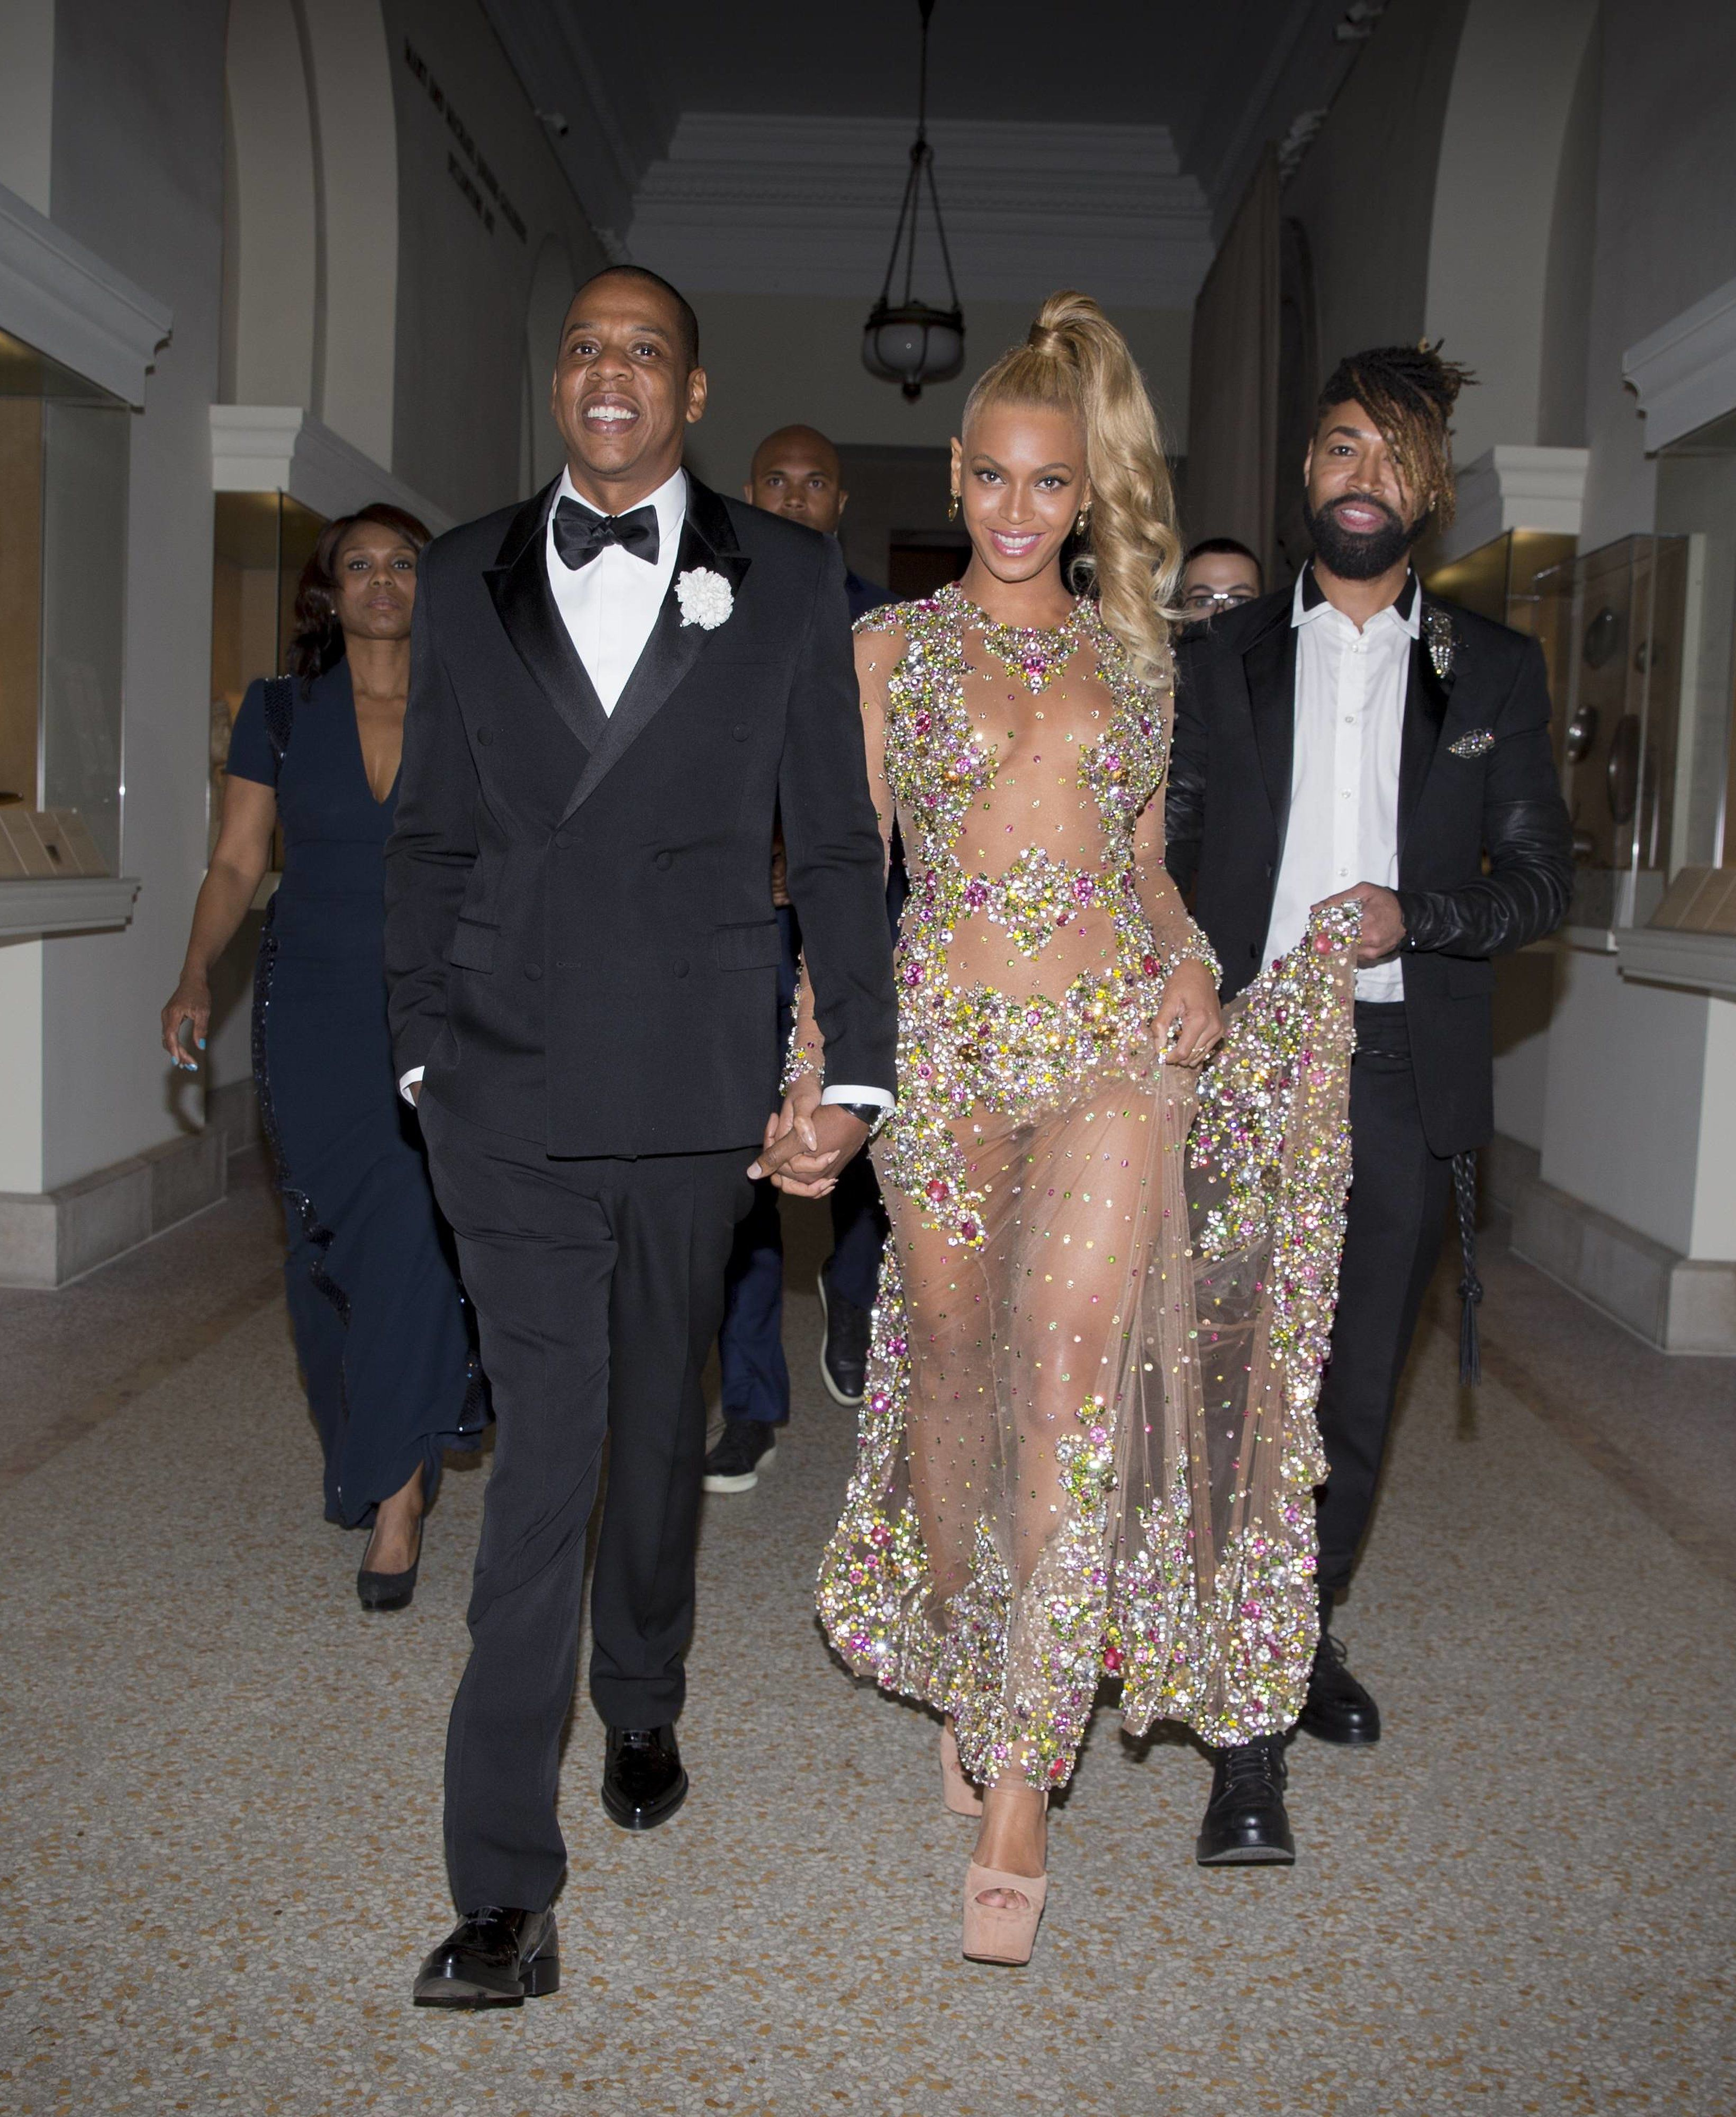 5b98f21e358 Jay Z and Beyoncé in Givenchy with stylist/train holder Ty Hunter,  publicist Yvette Noel Schure and bodyguard in tow